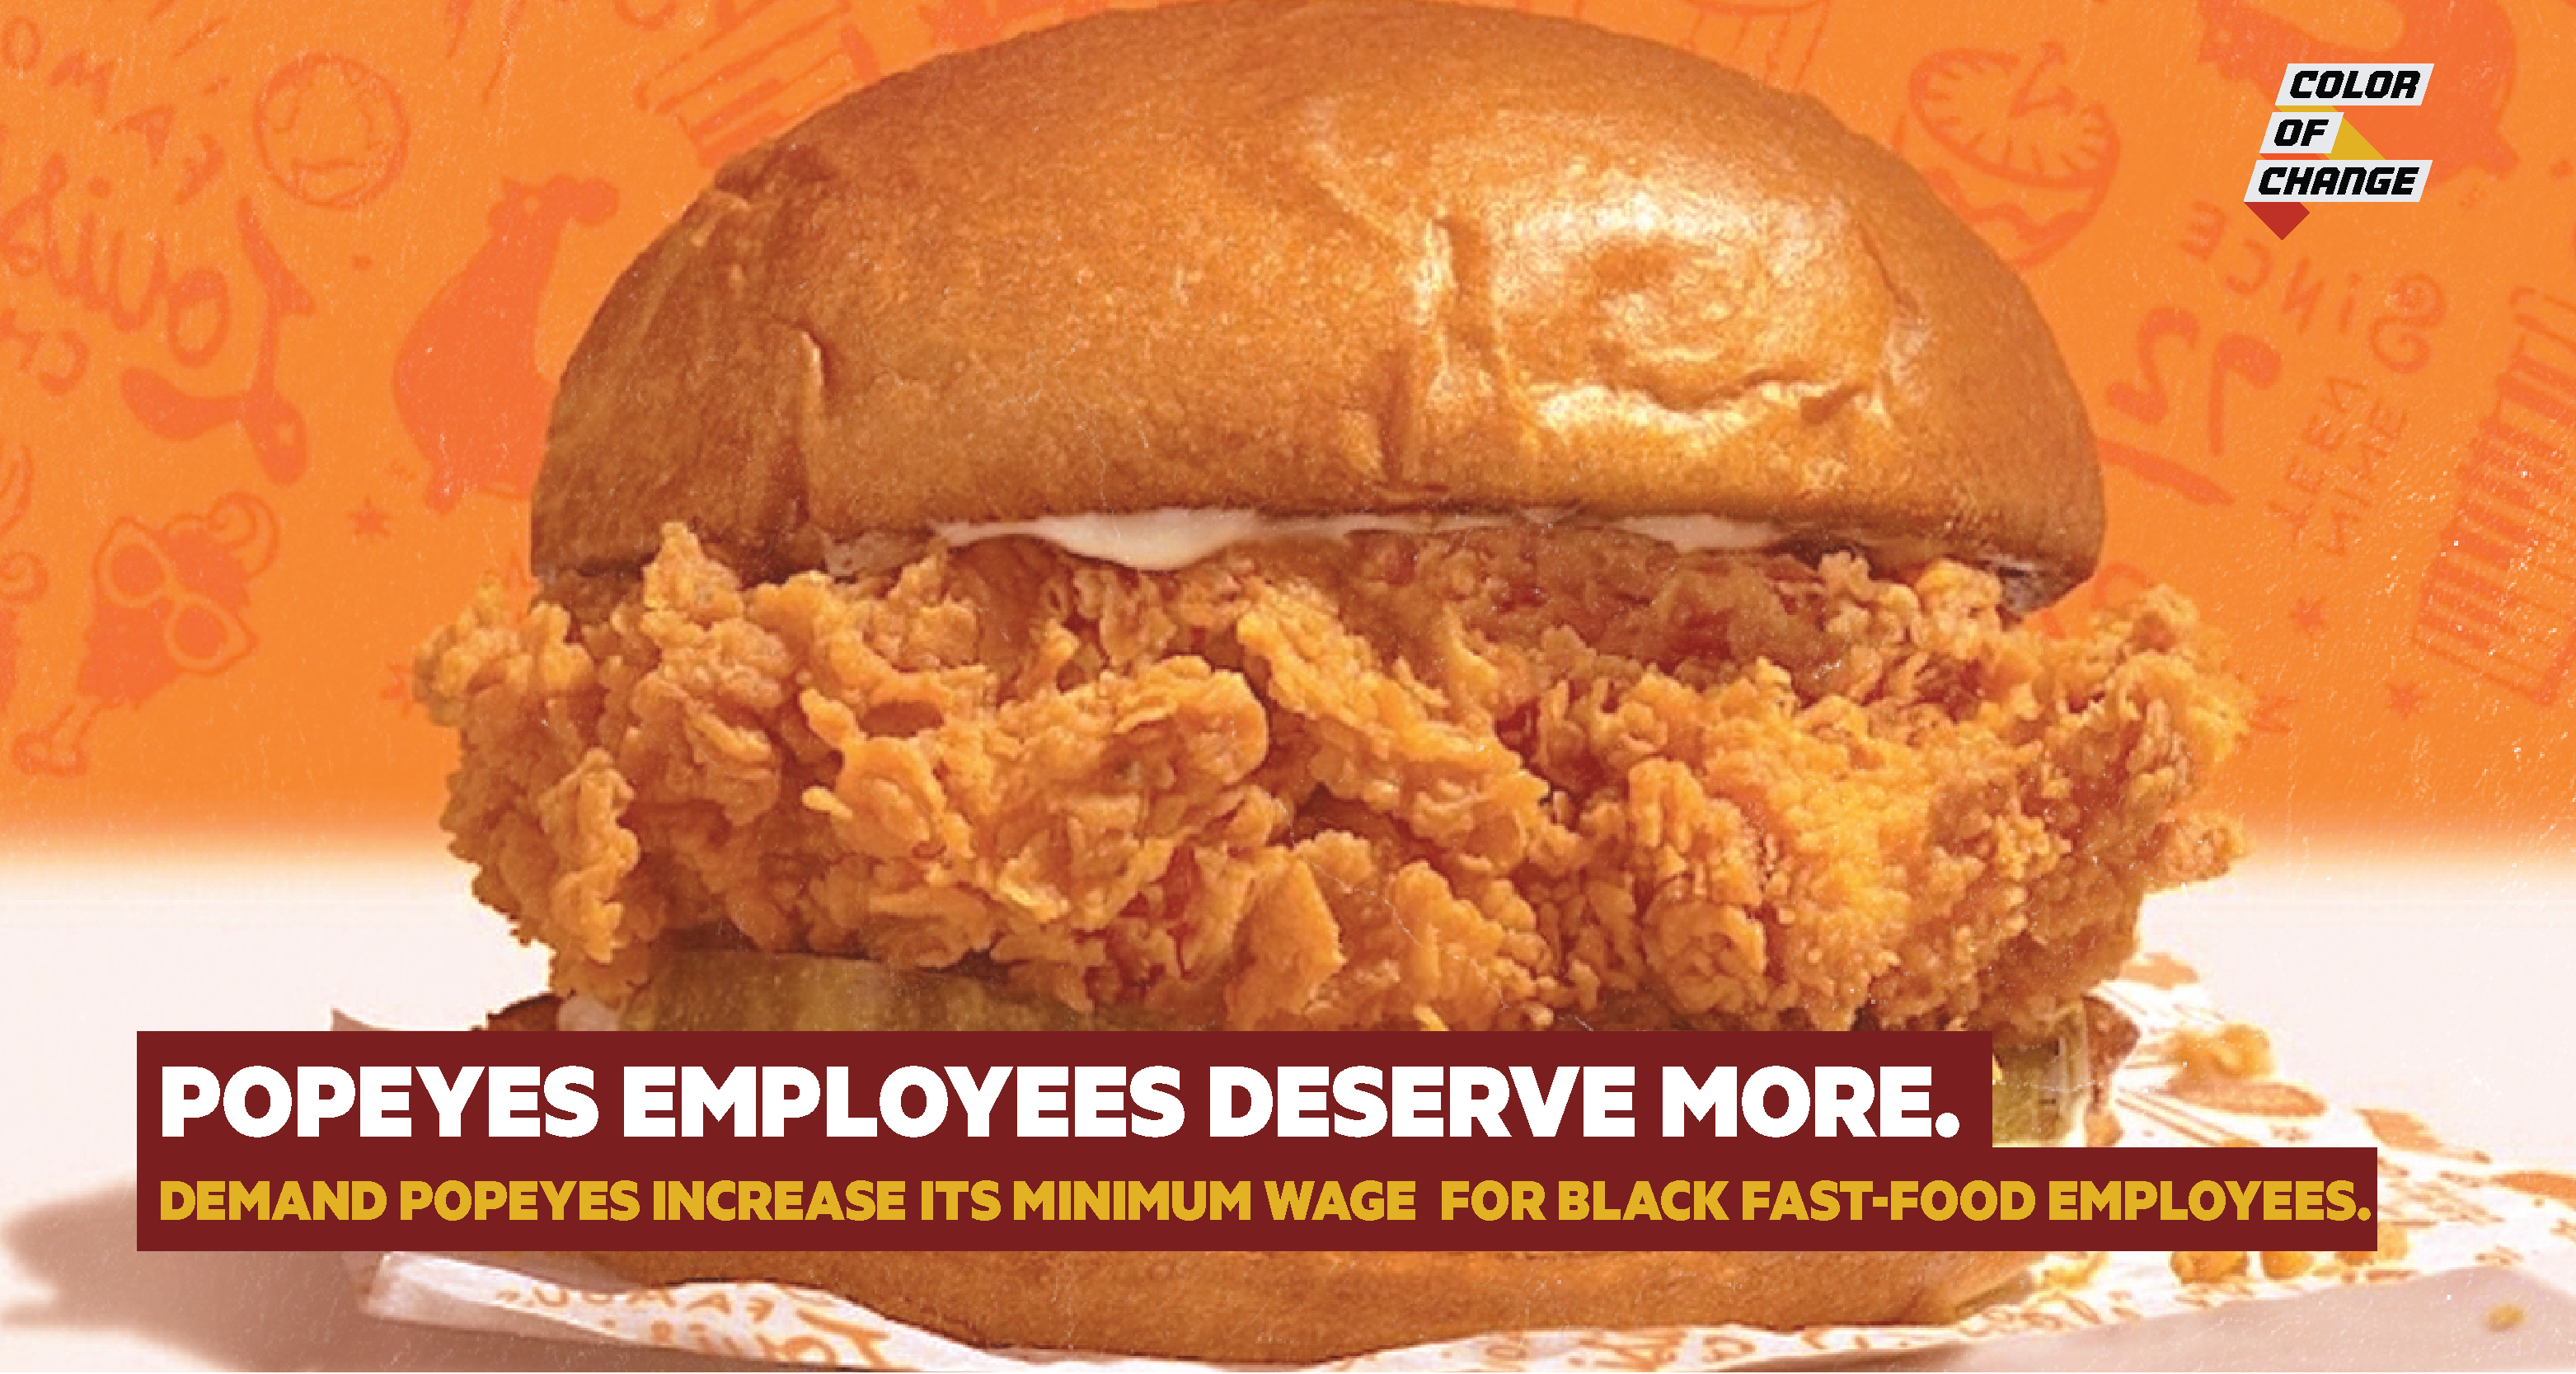 Black people disproportionately work fast food jobs. Popeyes needs to pay its employees more.